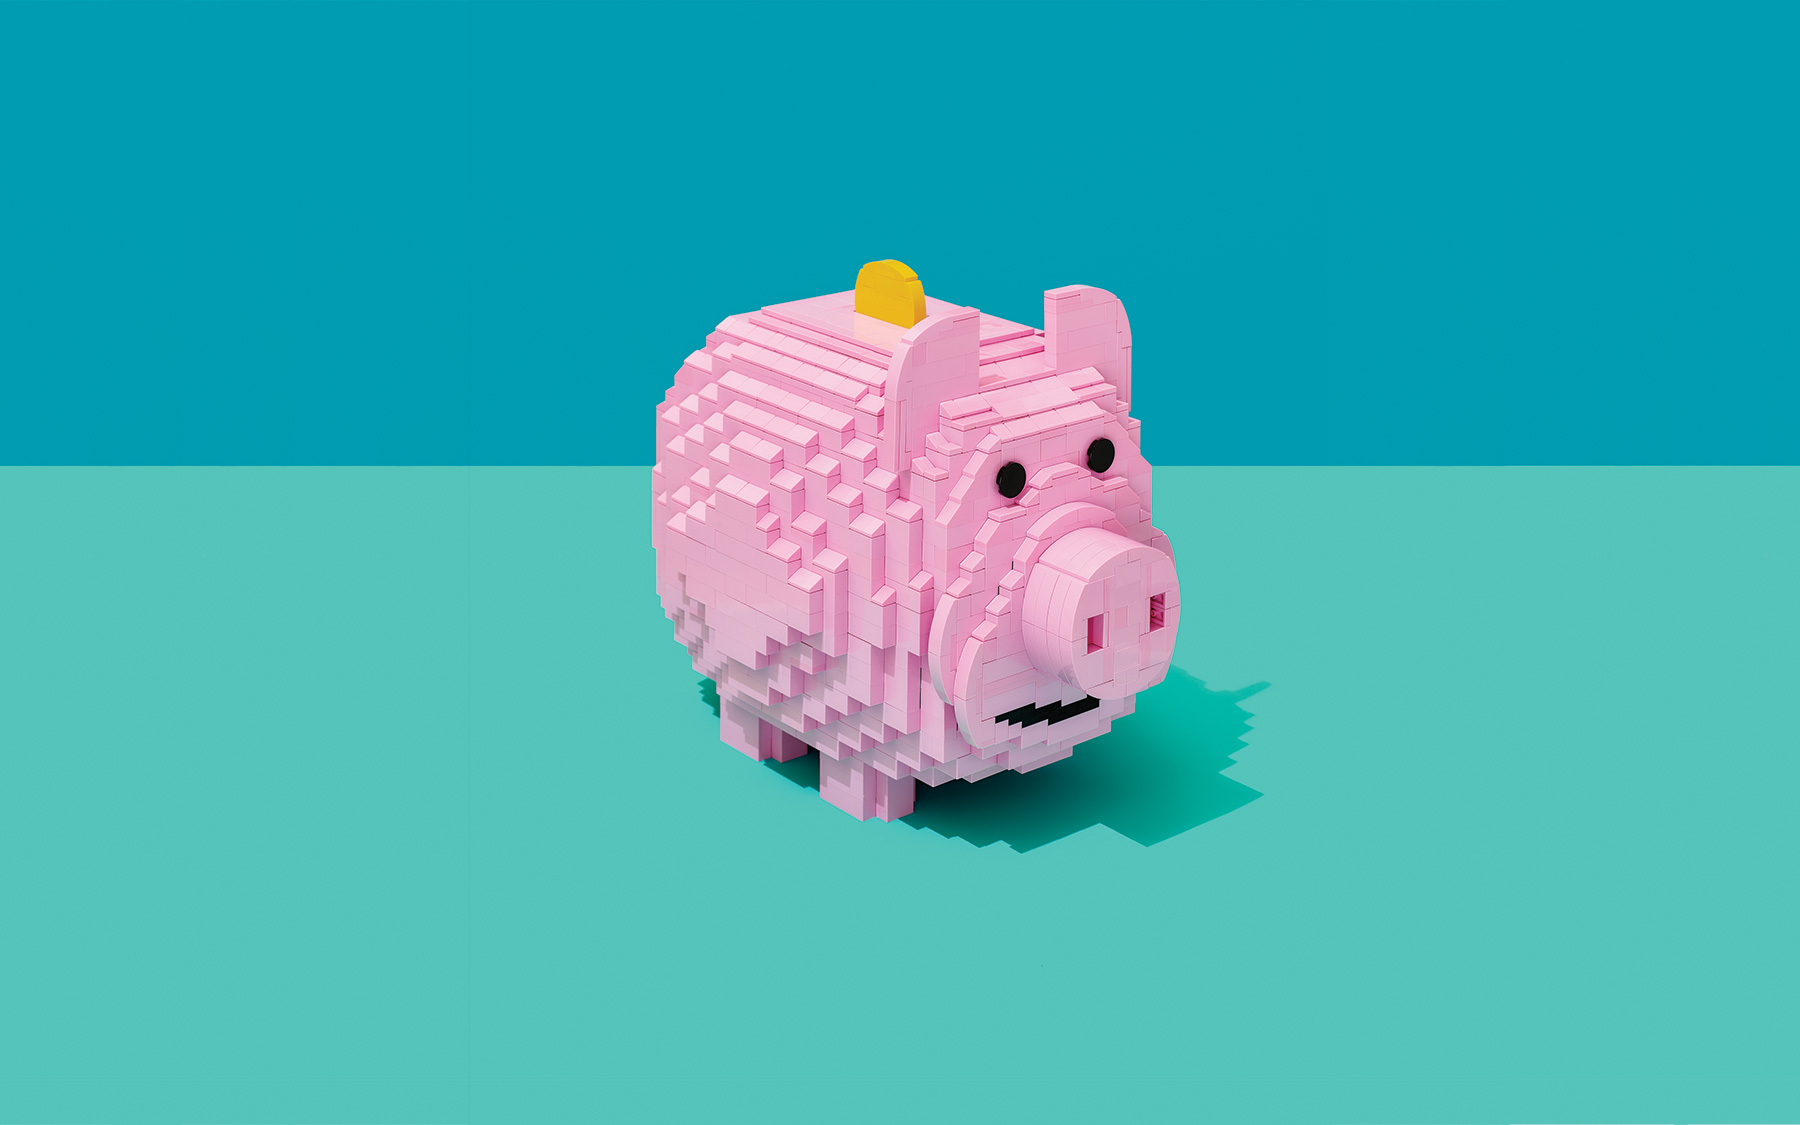 Piggy Bank LEGO Sculpture